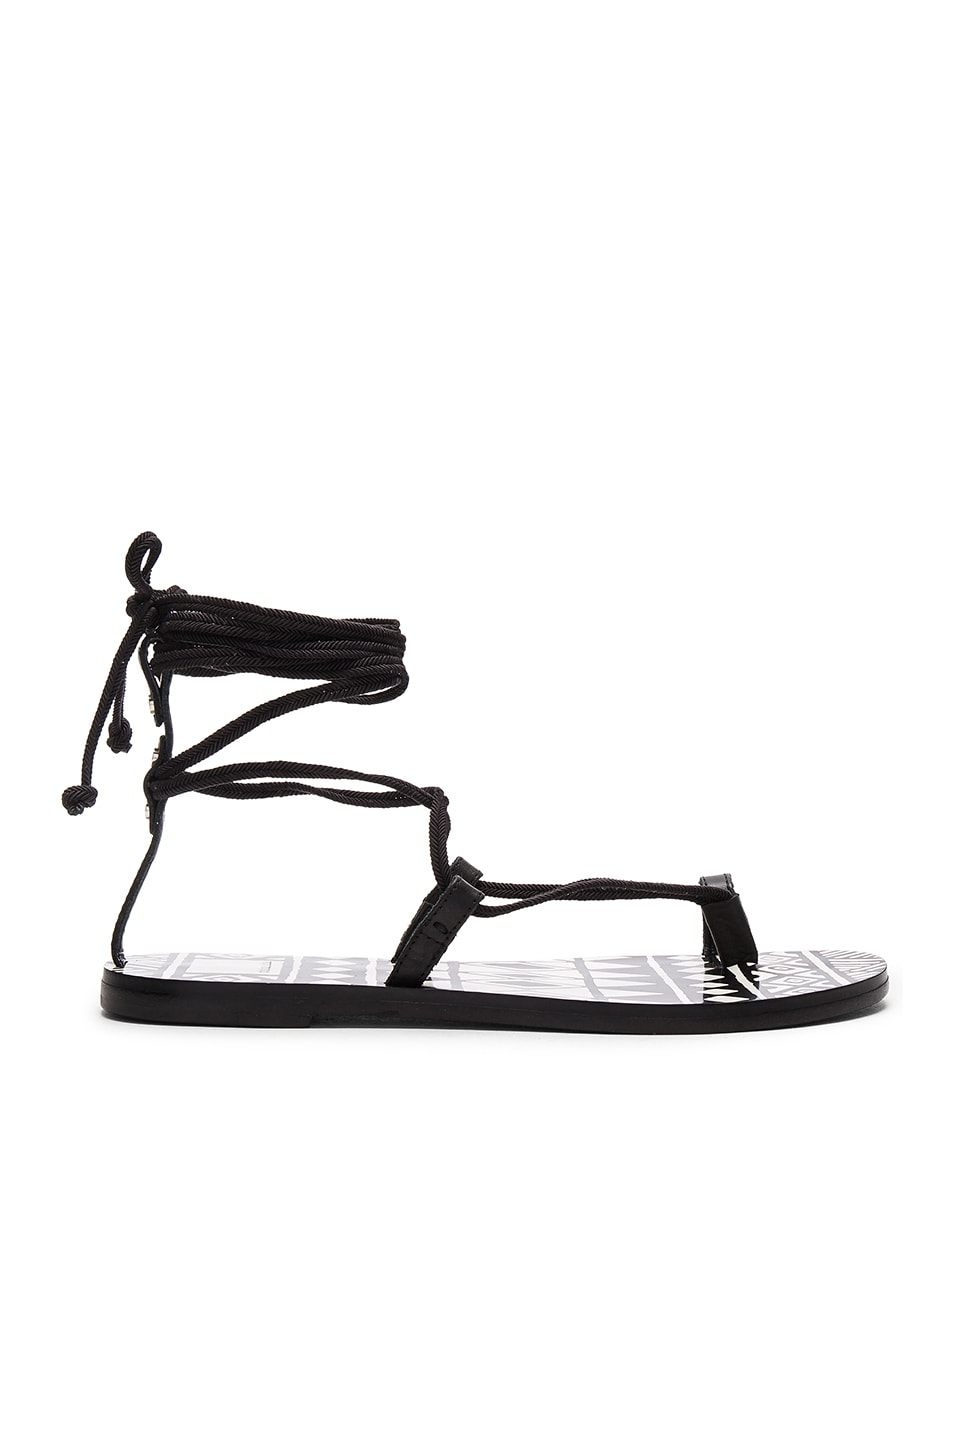 Chandler Sandal by Dolce Vita